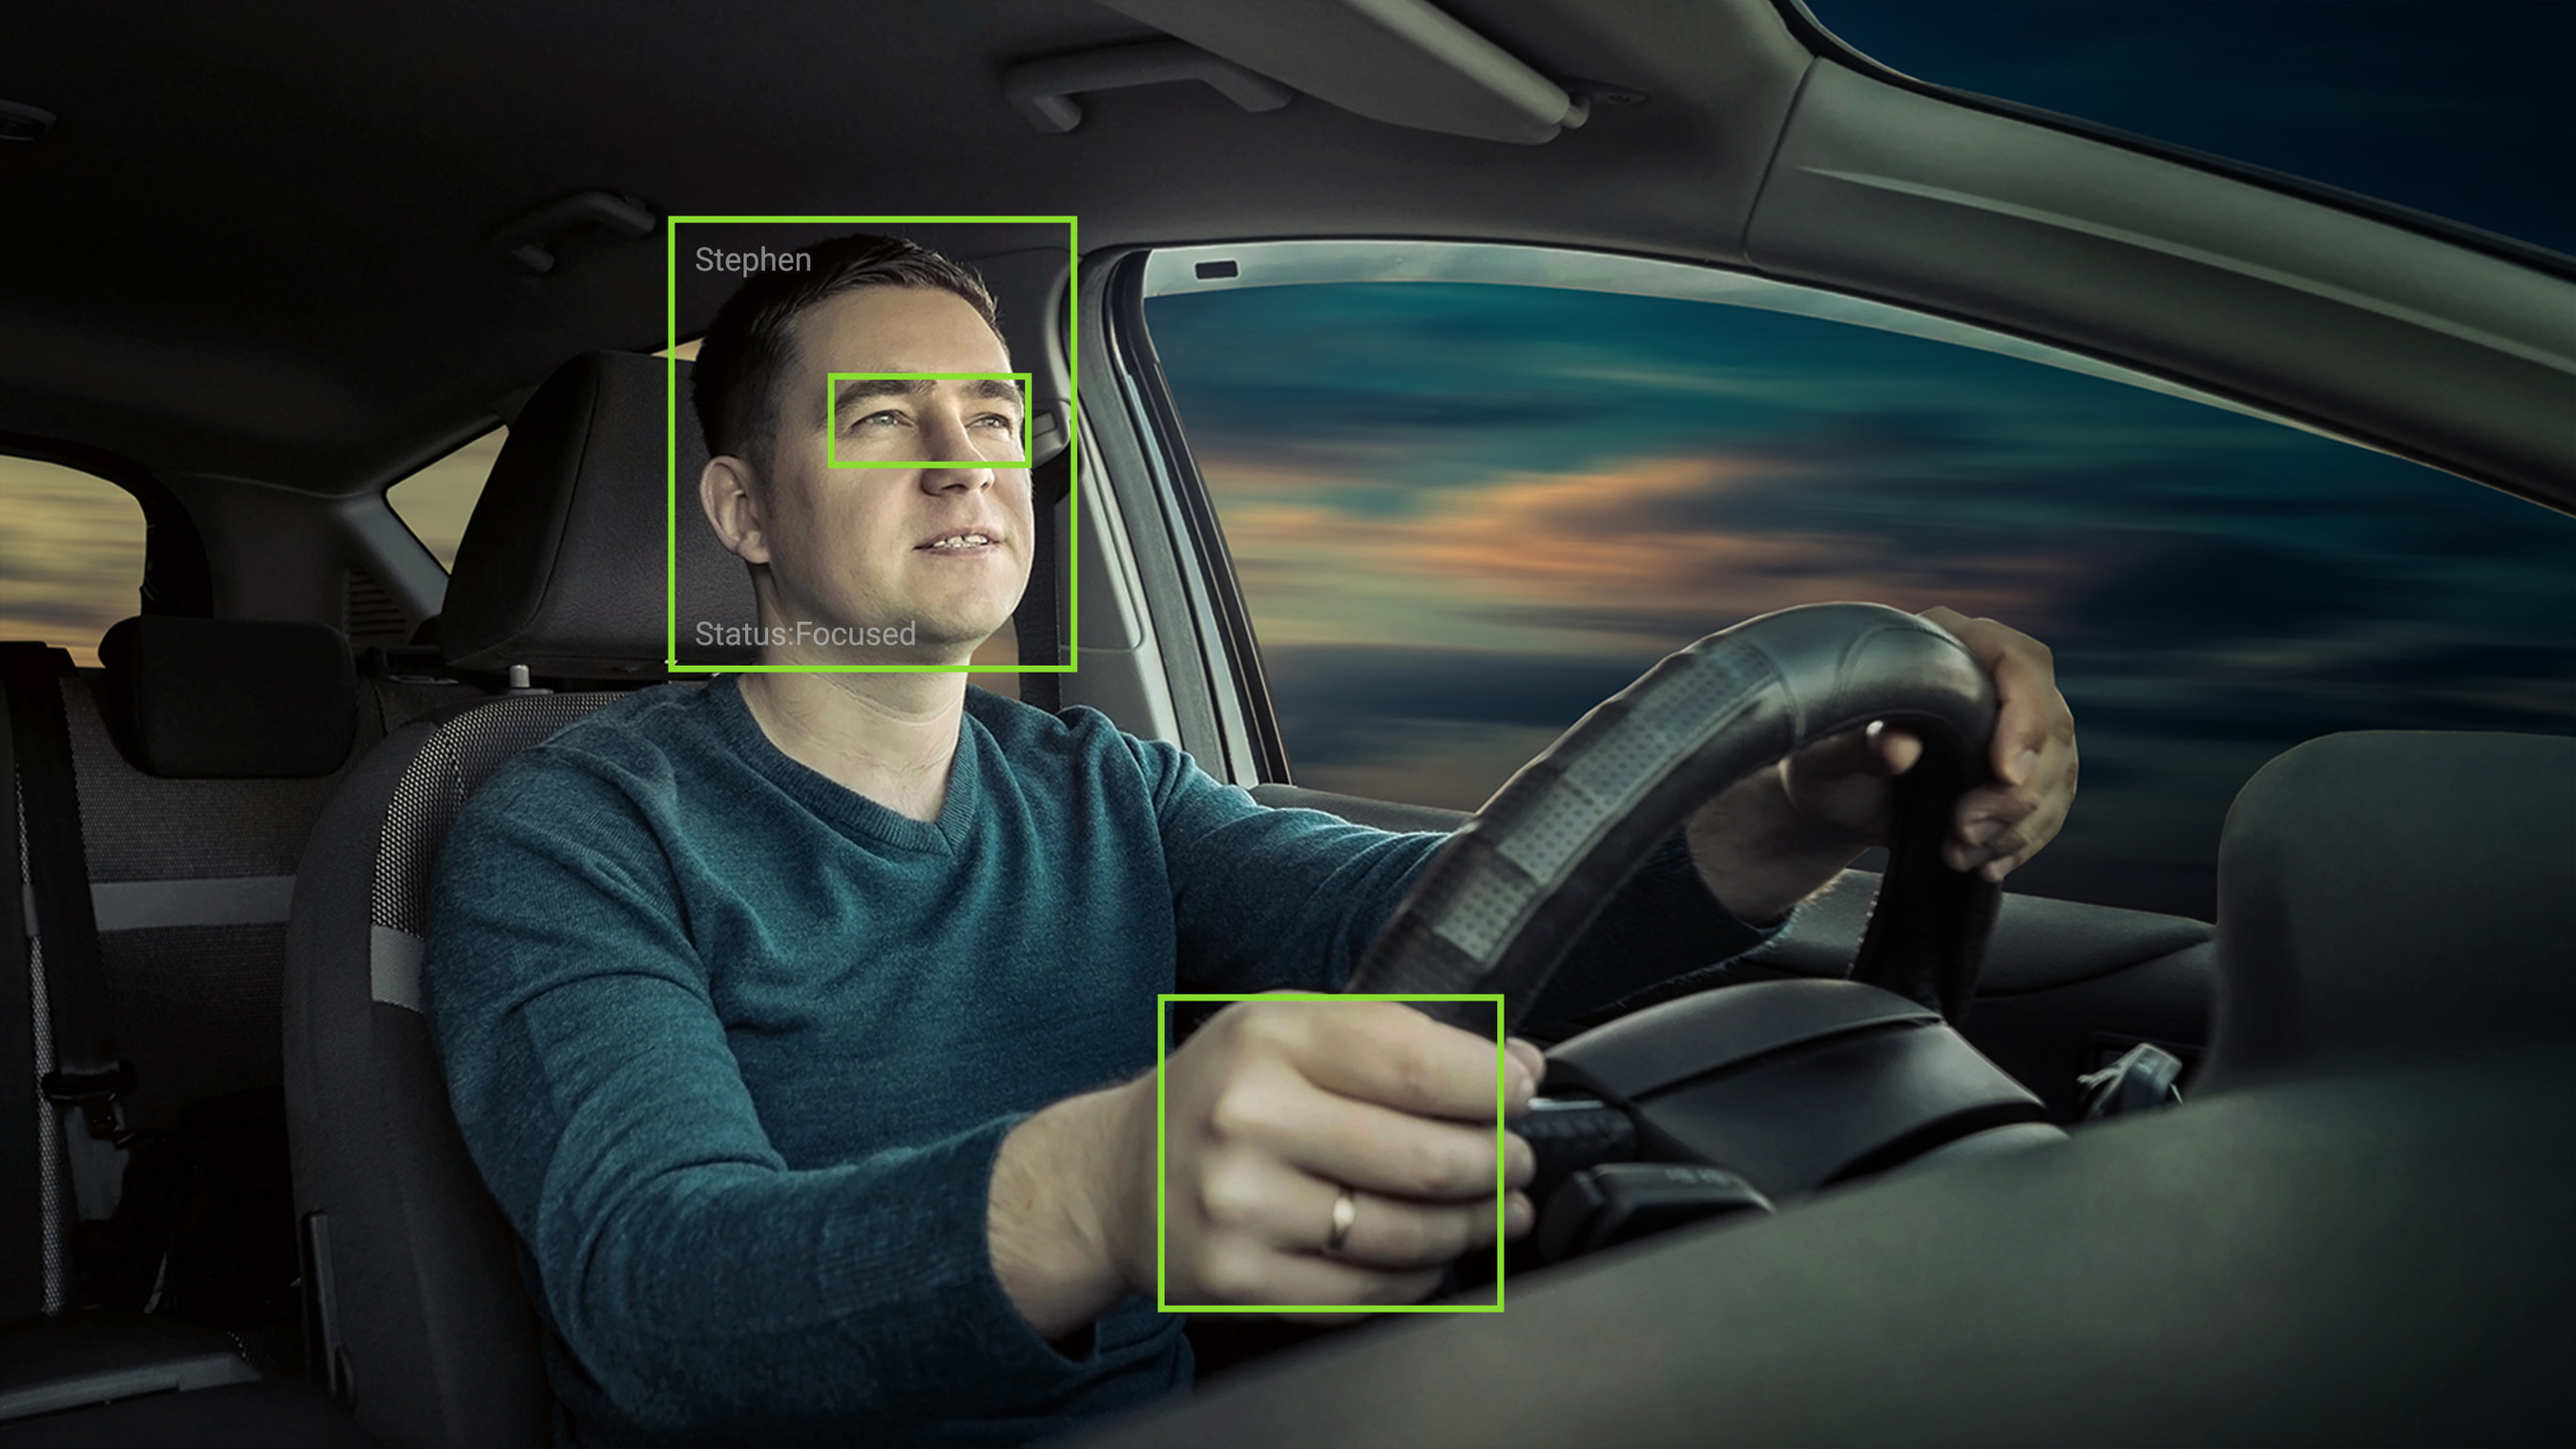 Combining computer vision, machine learning and sensor fusion, Caruma's system improves driver safety by monitoring specific details about the driver to detect fatigue, attentiveness and driver distraction. The system senses and alerts drivers in real-time to external dangers or distractions to help avoid collisions.